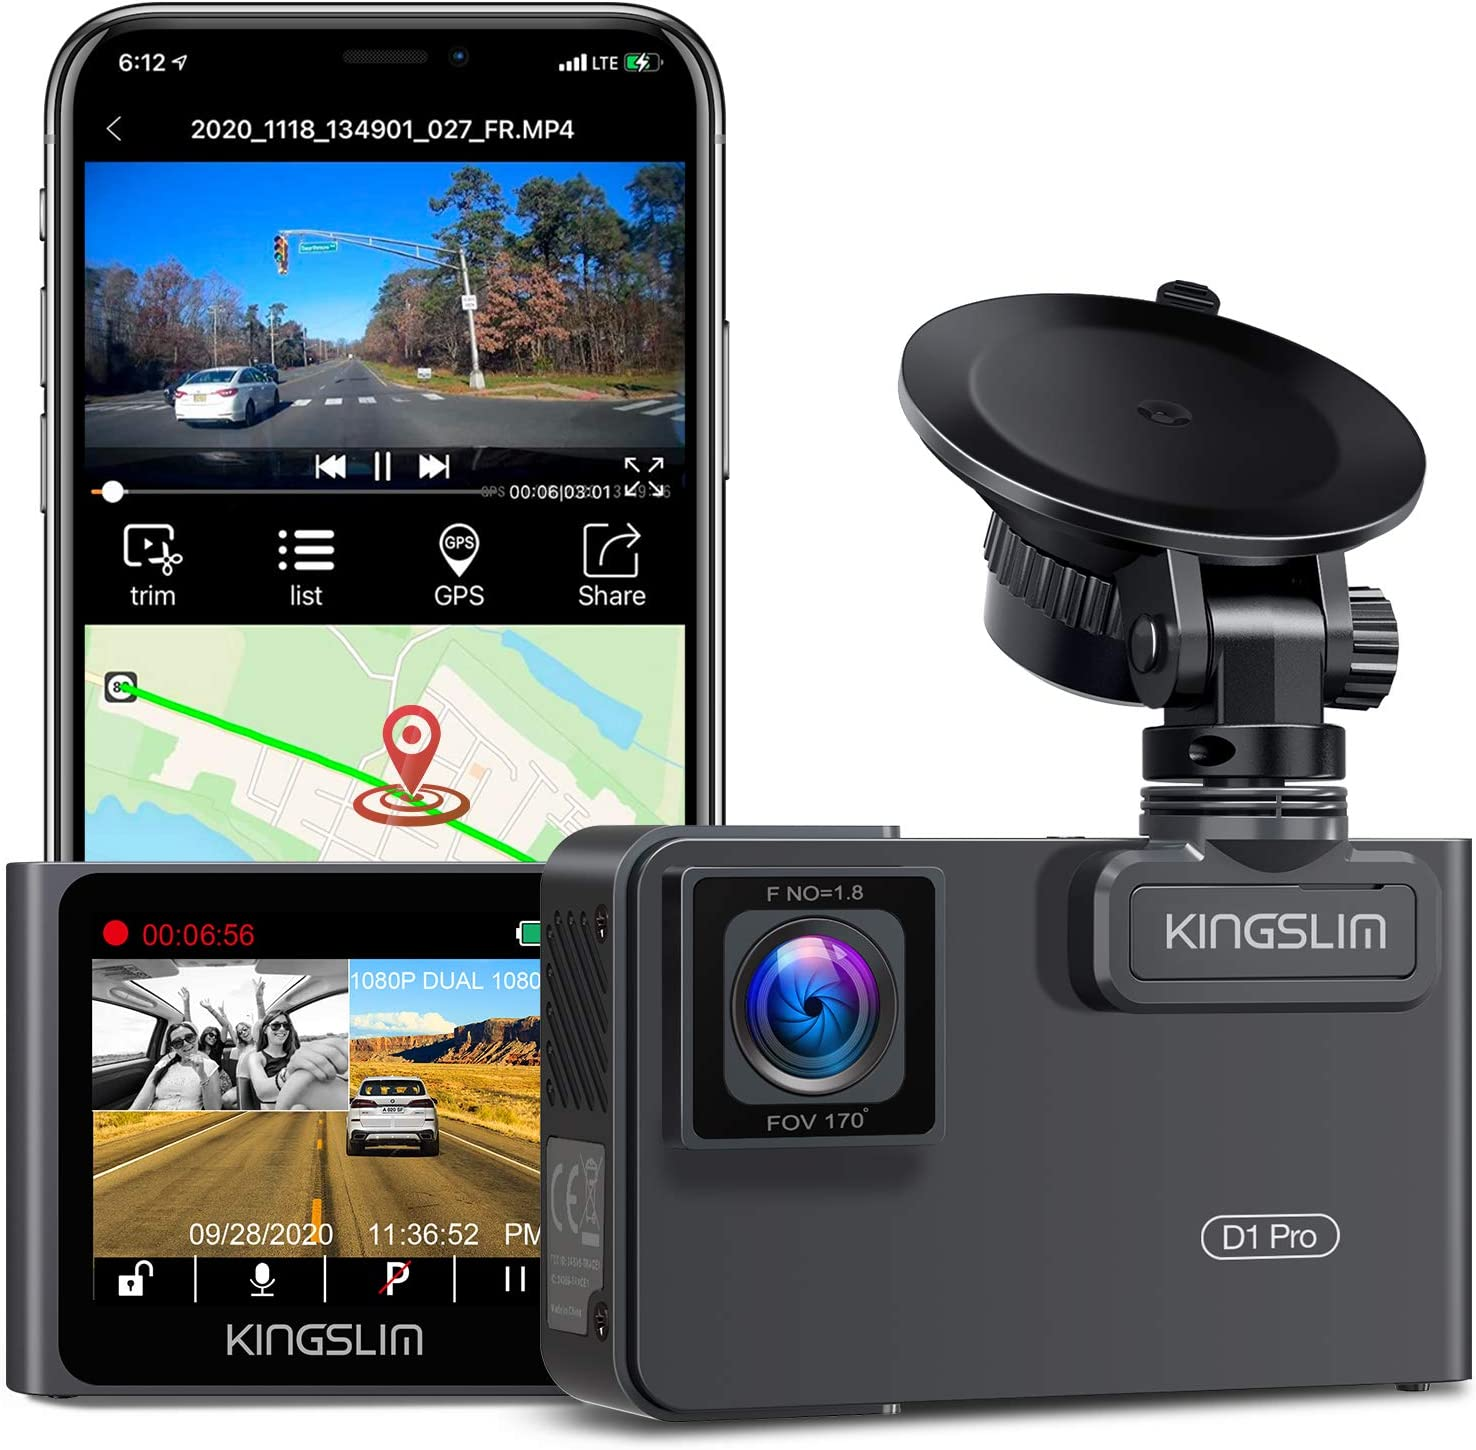 Kingslim D1 Pro Overseas parallel import regular item 2K Dual Dash 1080P GPS Cam Mail order Front with Wi-Fi